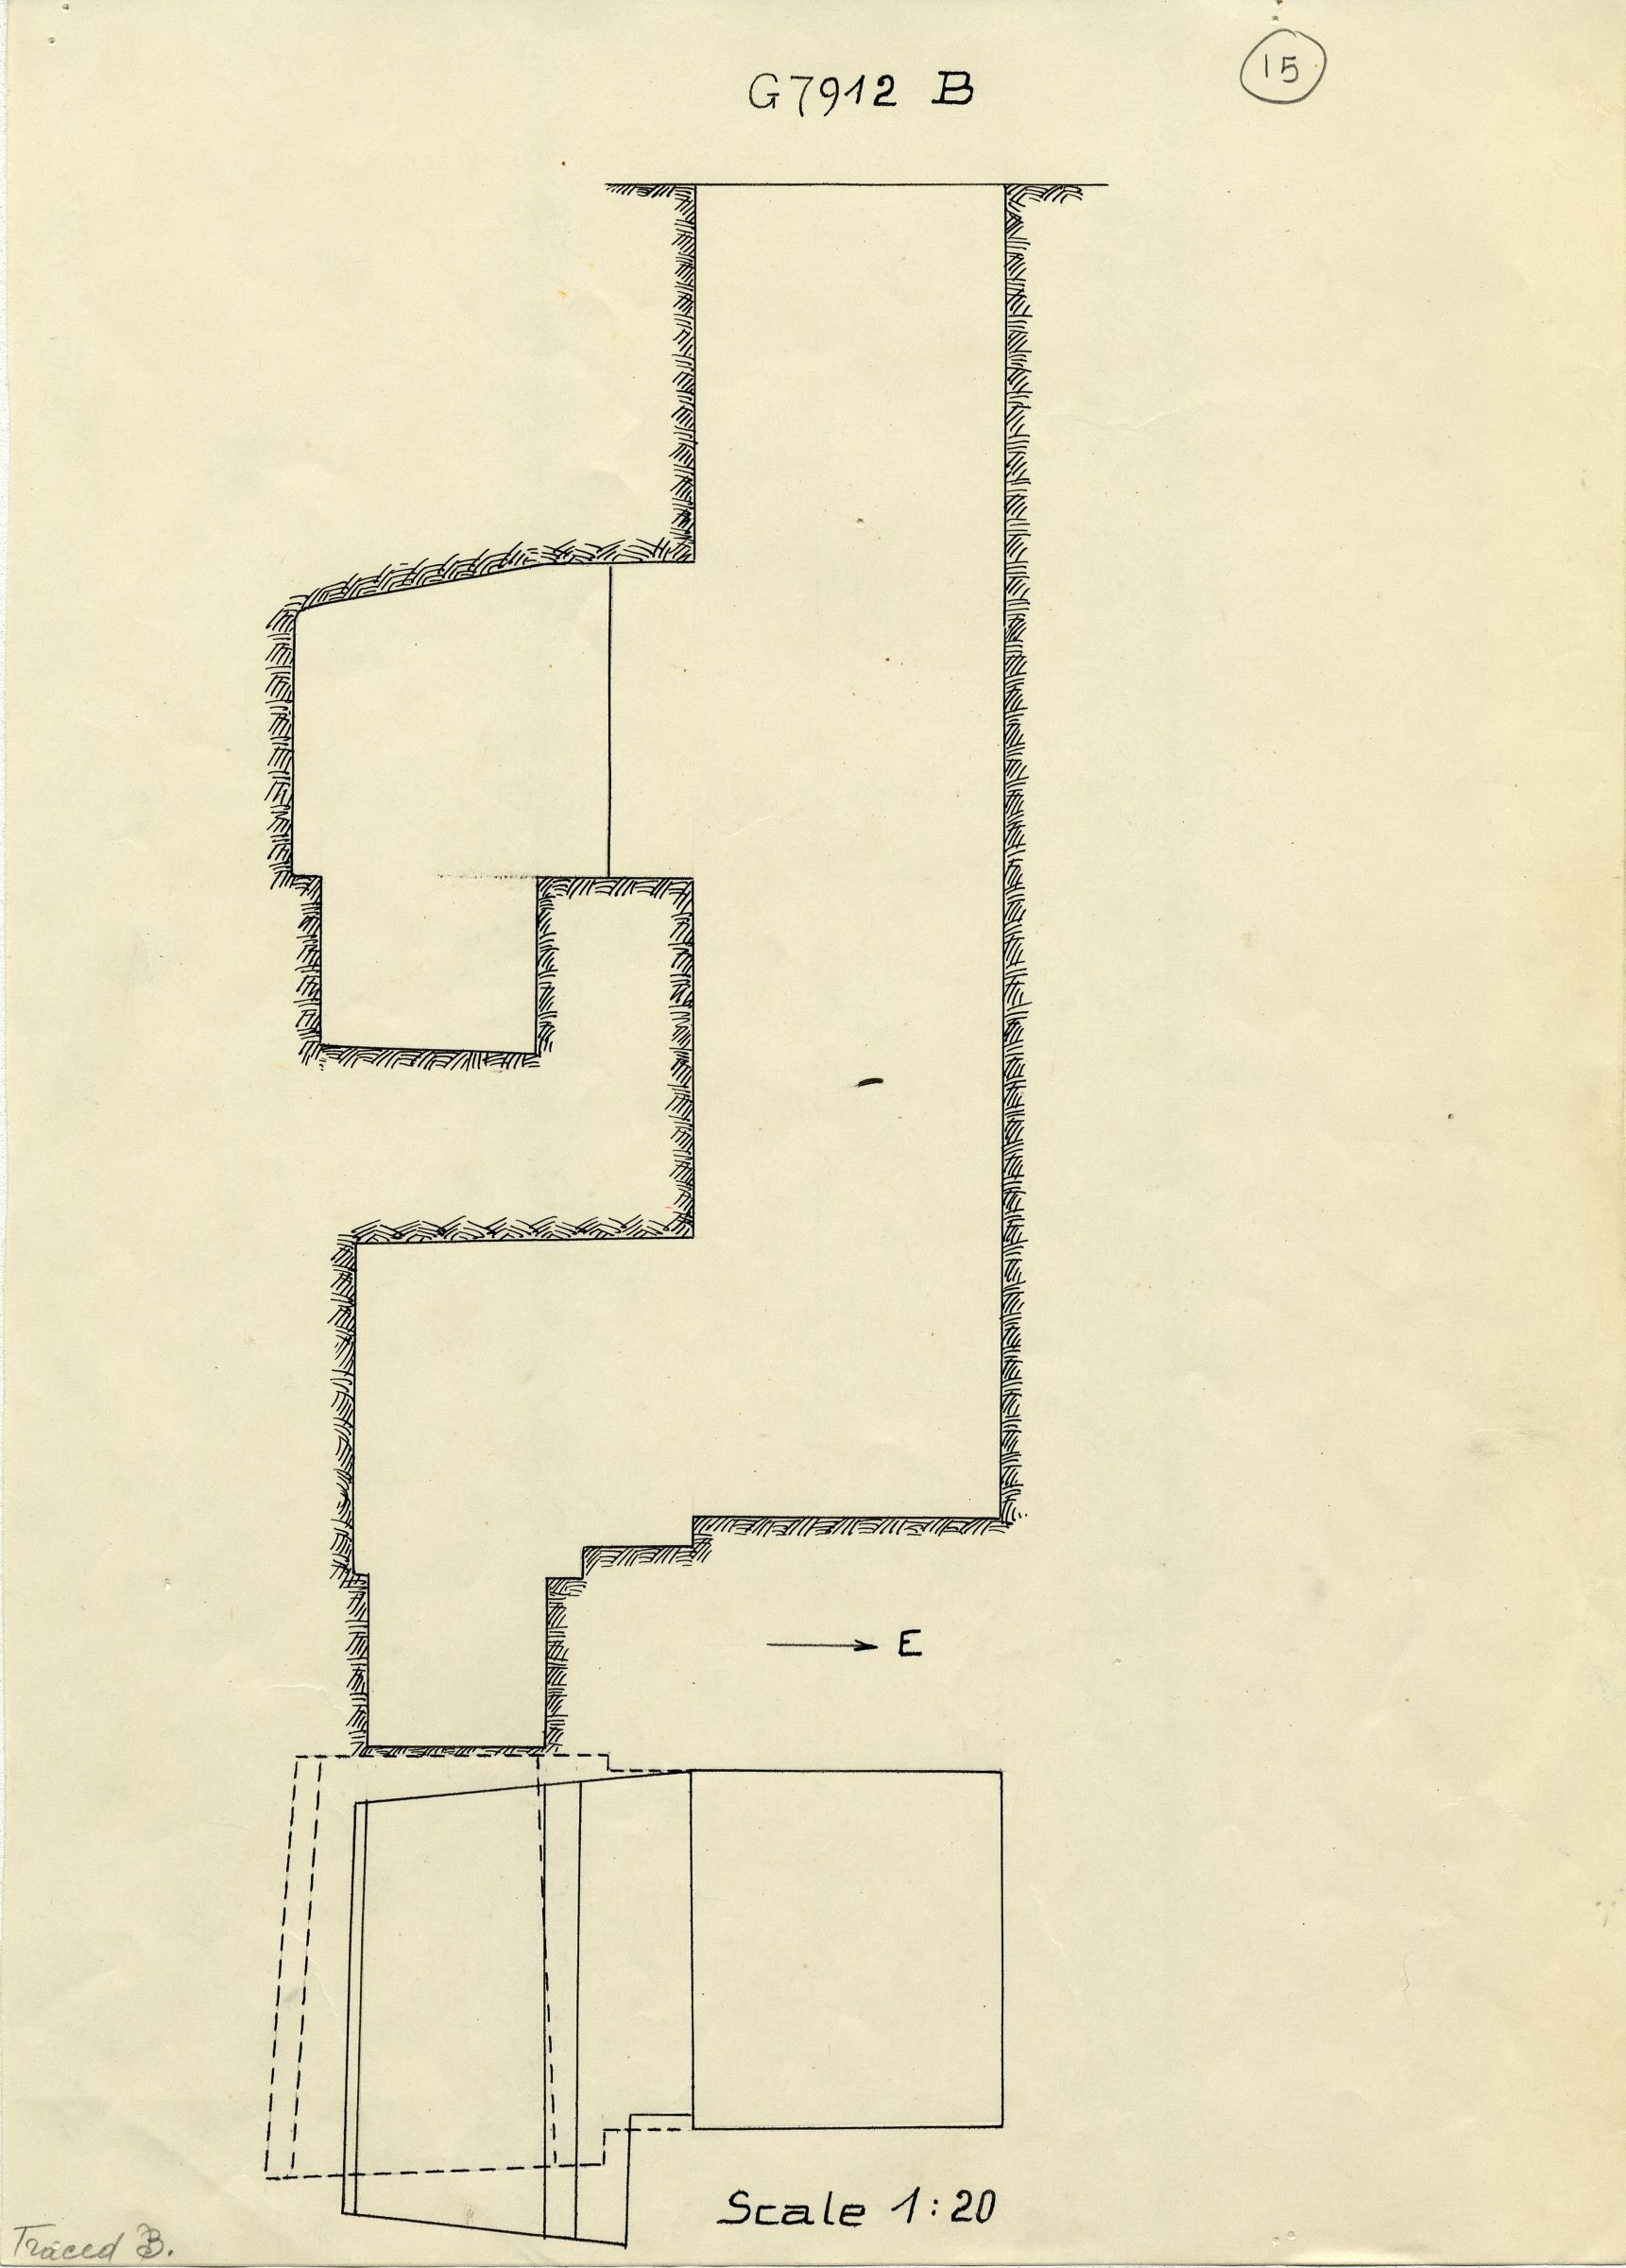 Maps and plans: G 7912, Shaft B